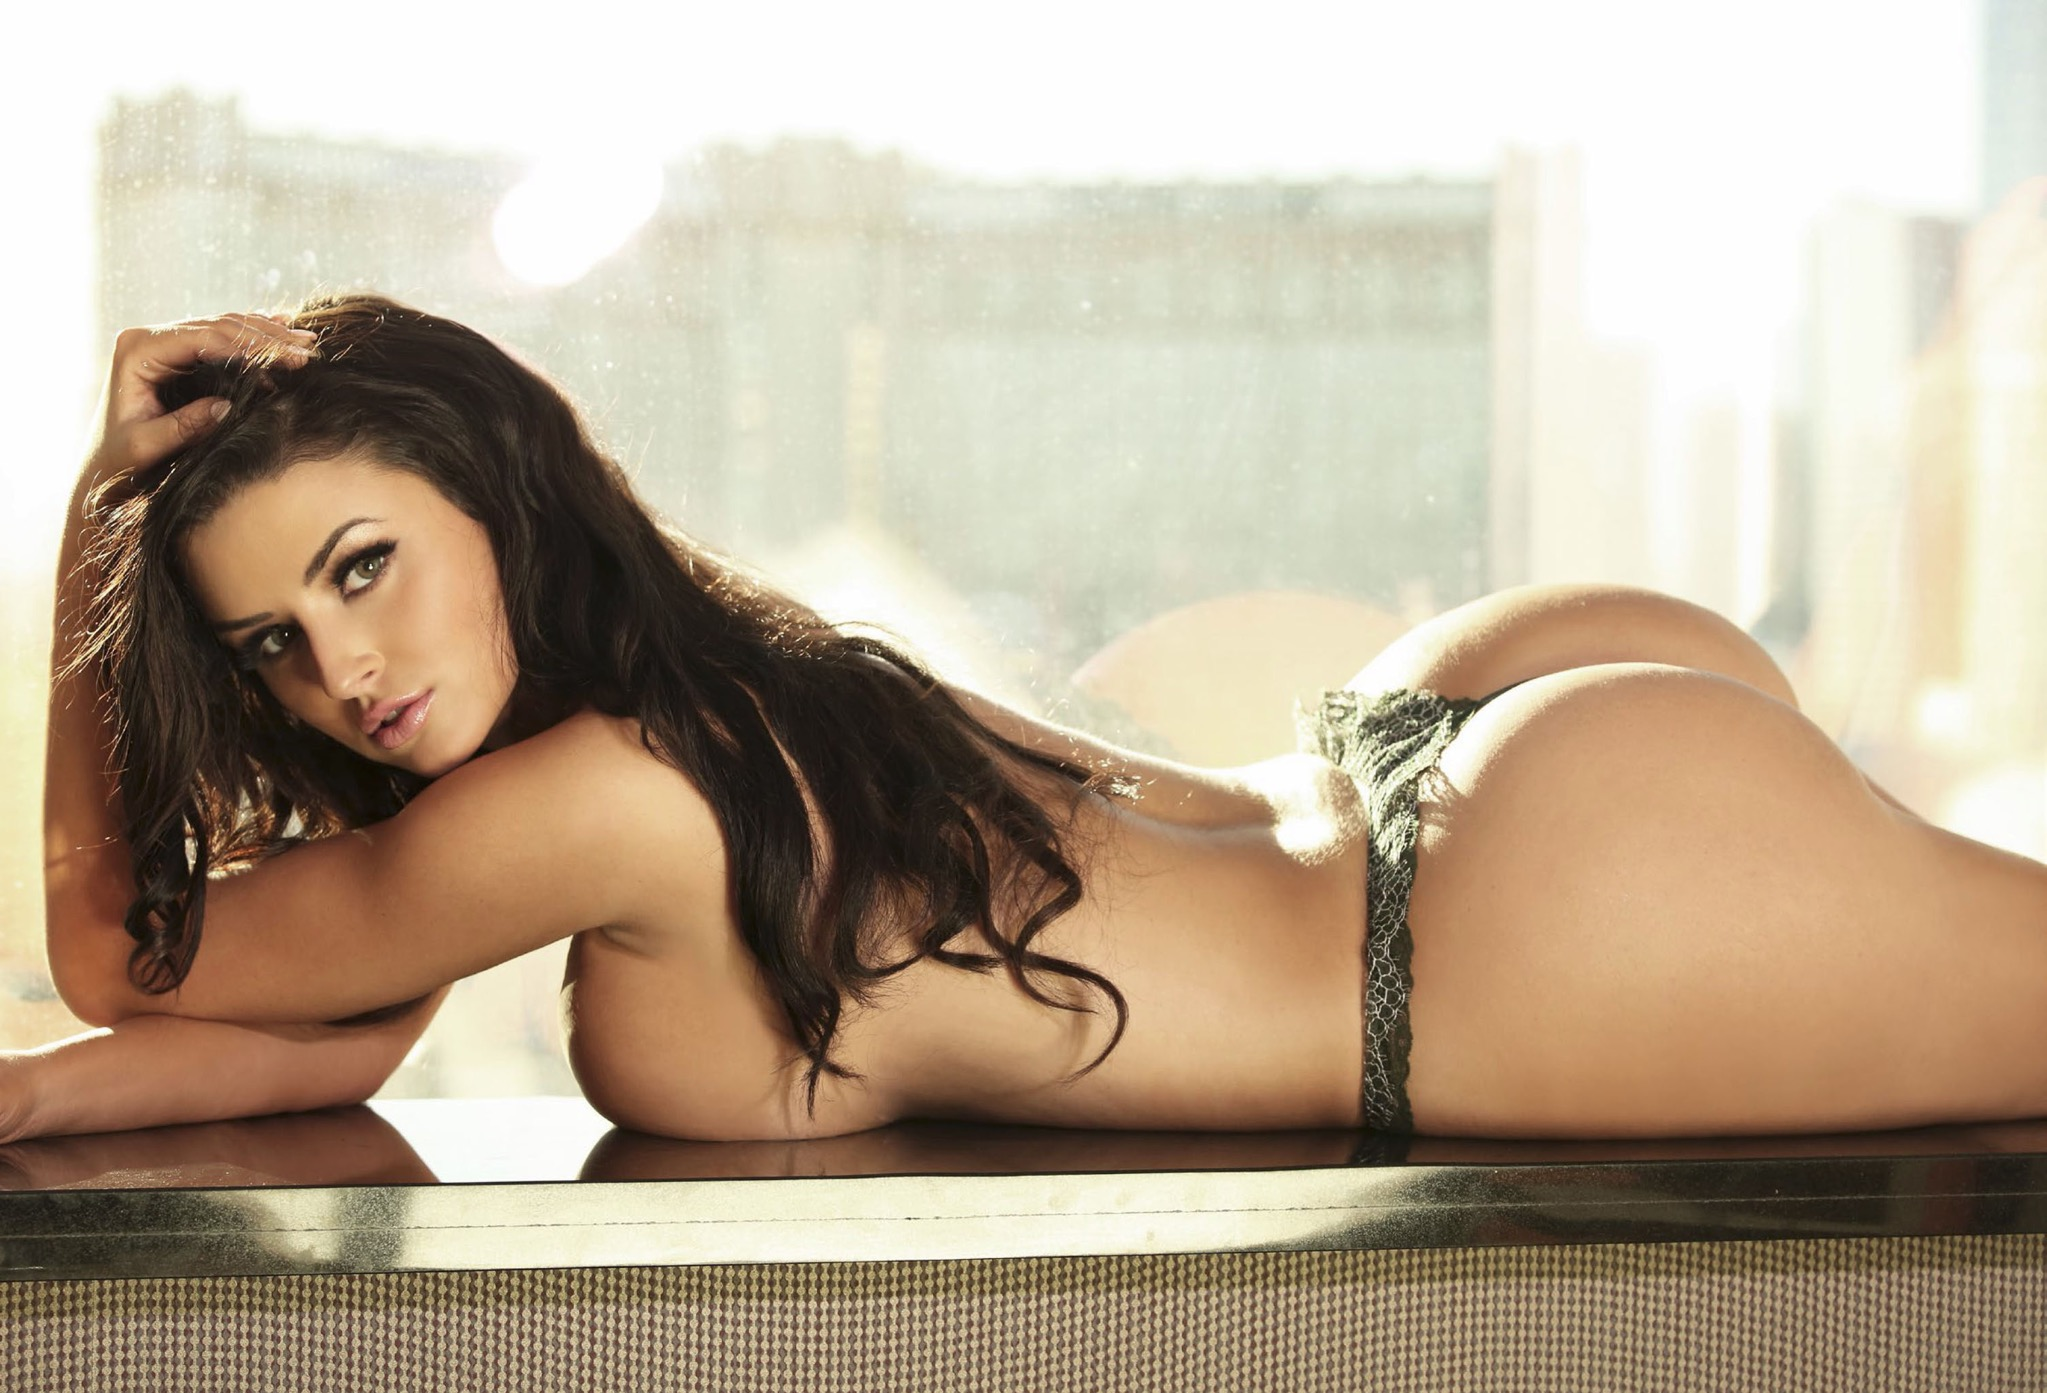 abigail ratchford hot pictures